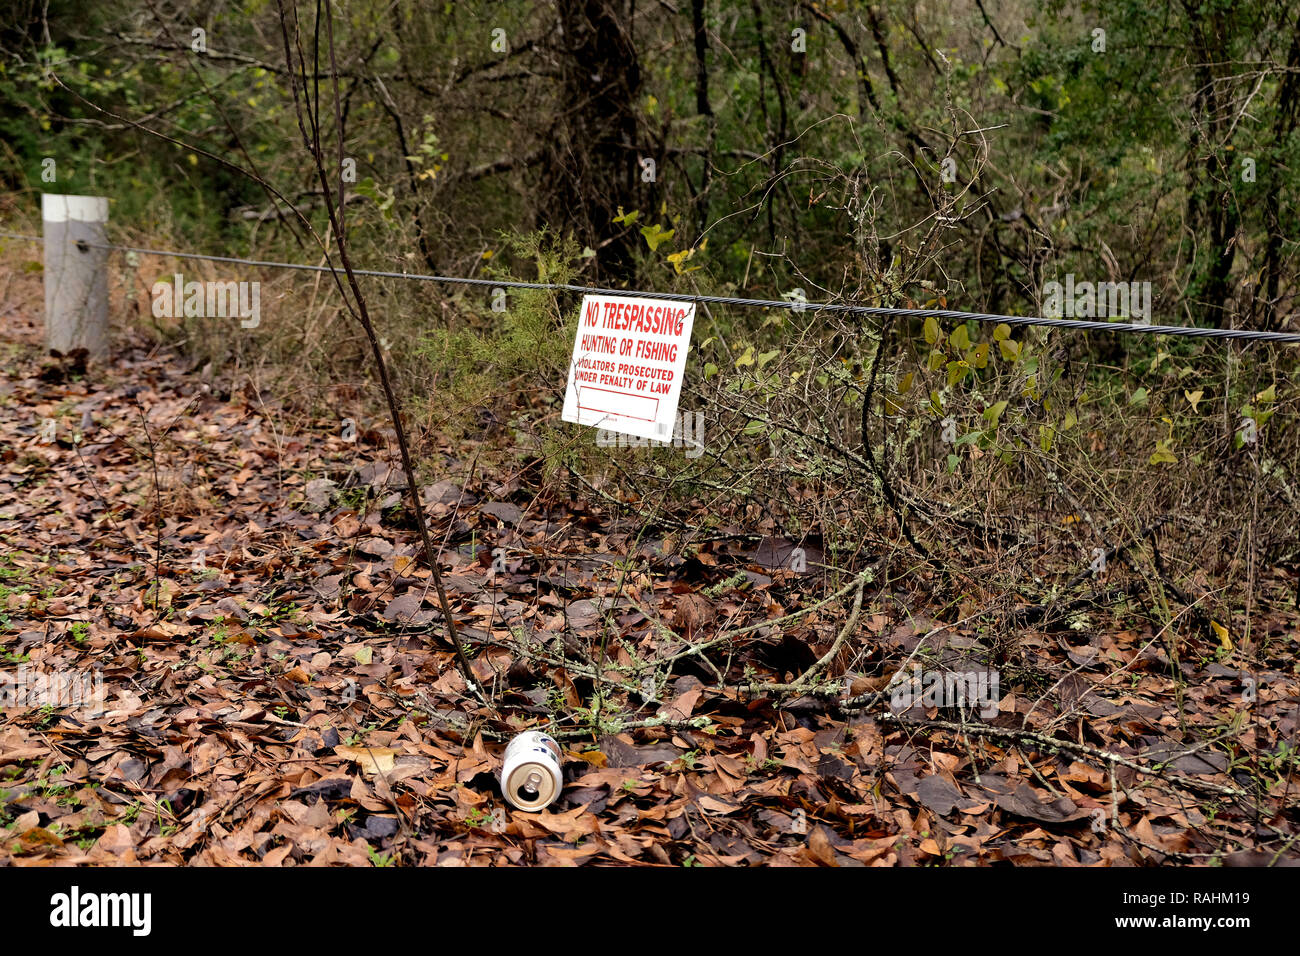 Empty beer can thrown on the ground amid leaves in nature with a No Trespassing sign above it; aluminum pollution; trash in nature. - Stock Image